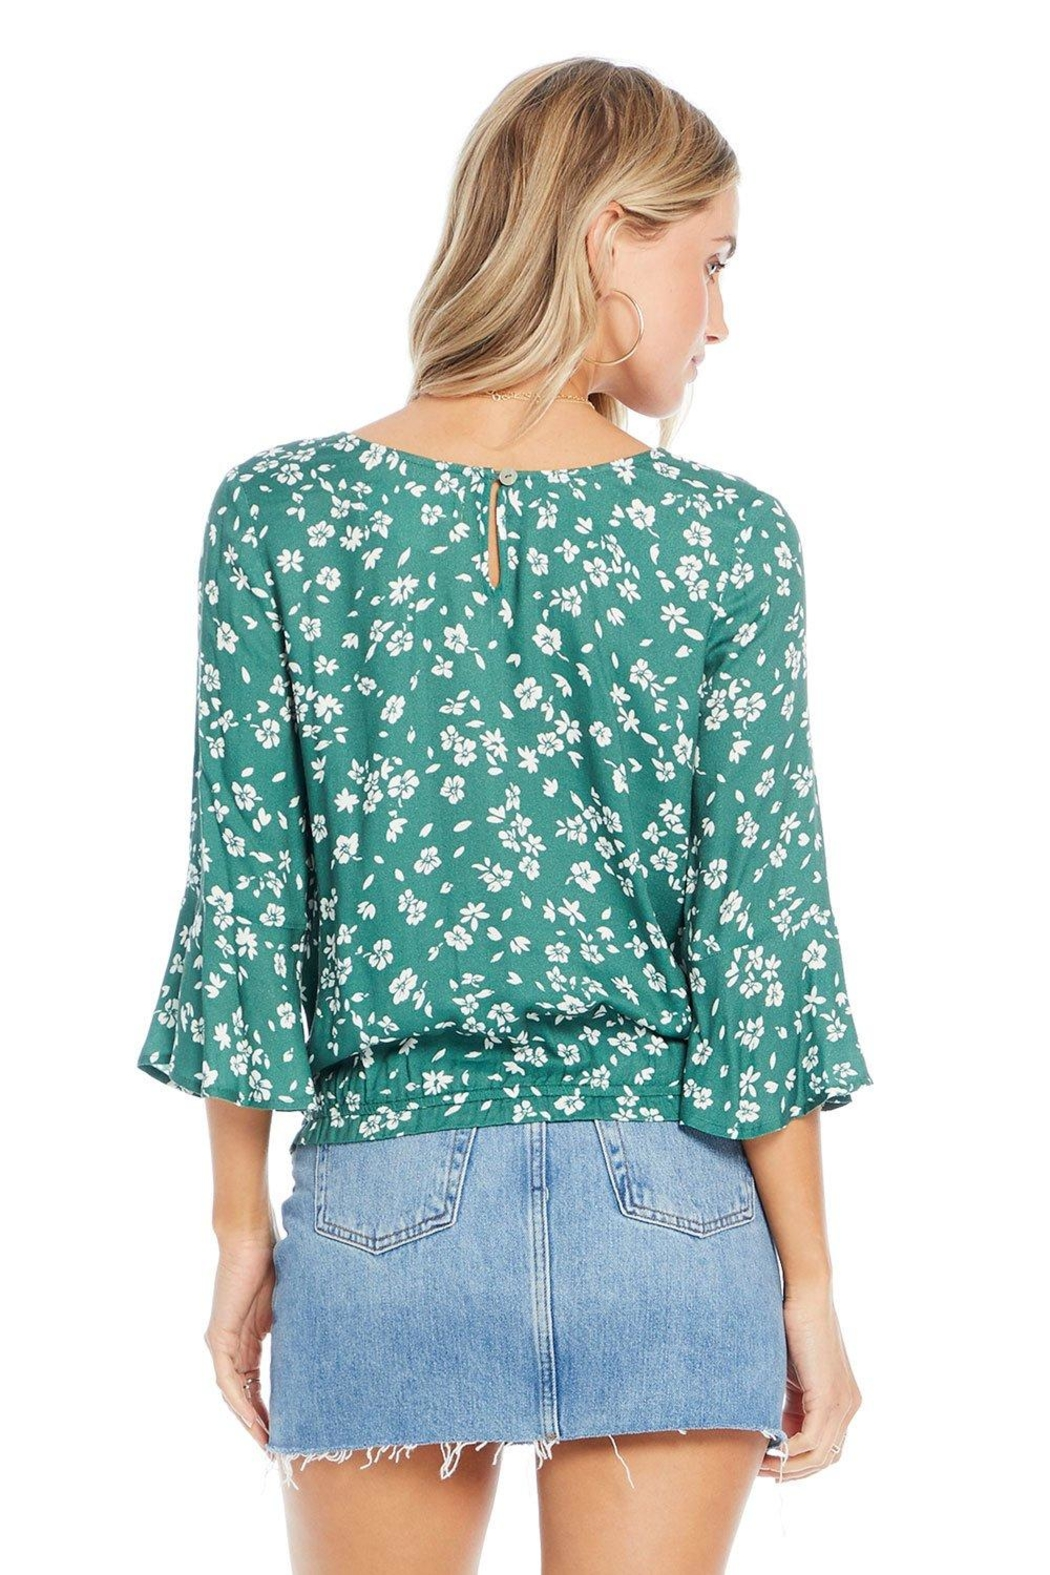 Saltwater Luxe Evergreen Floral Blouse - Front Full Image